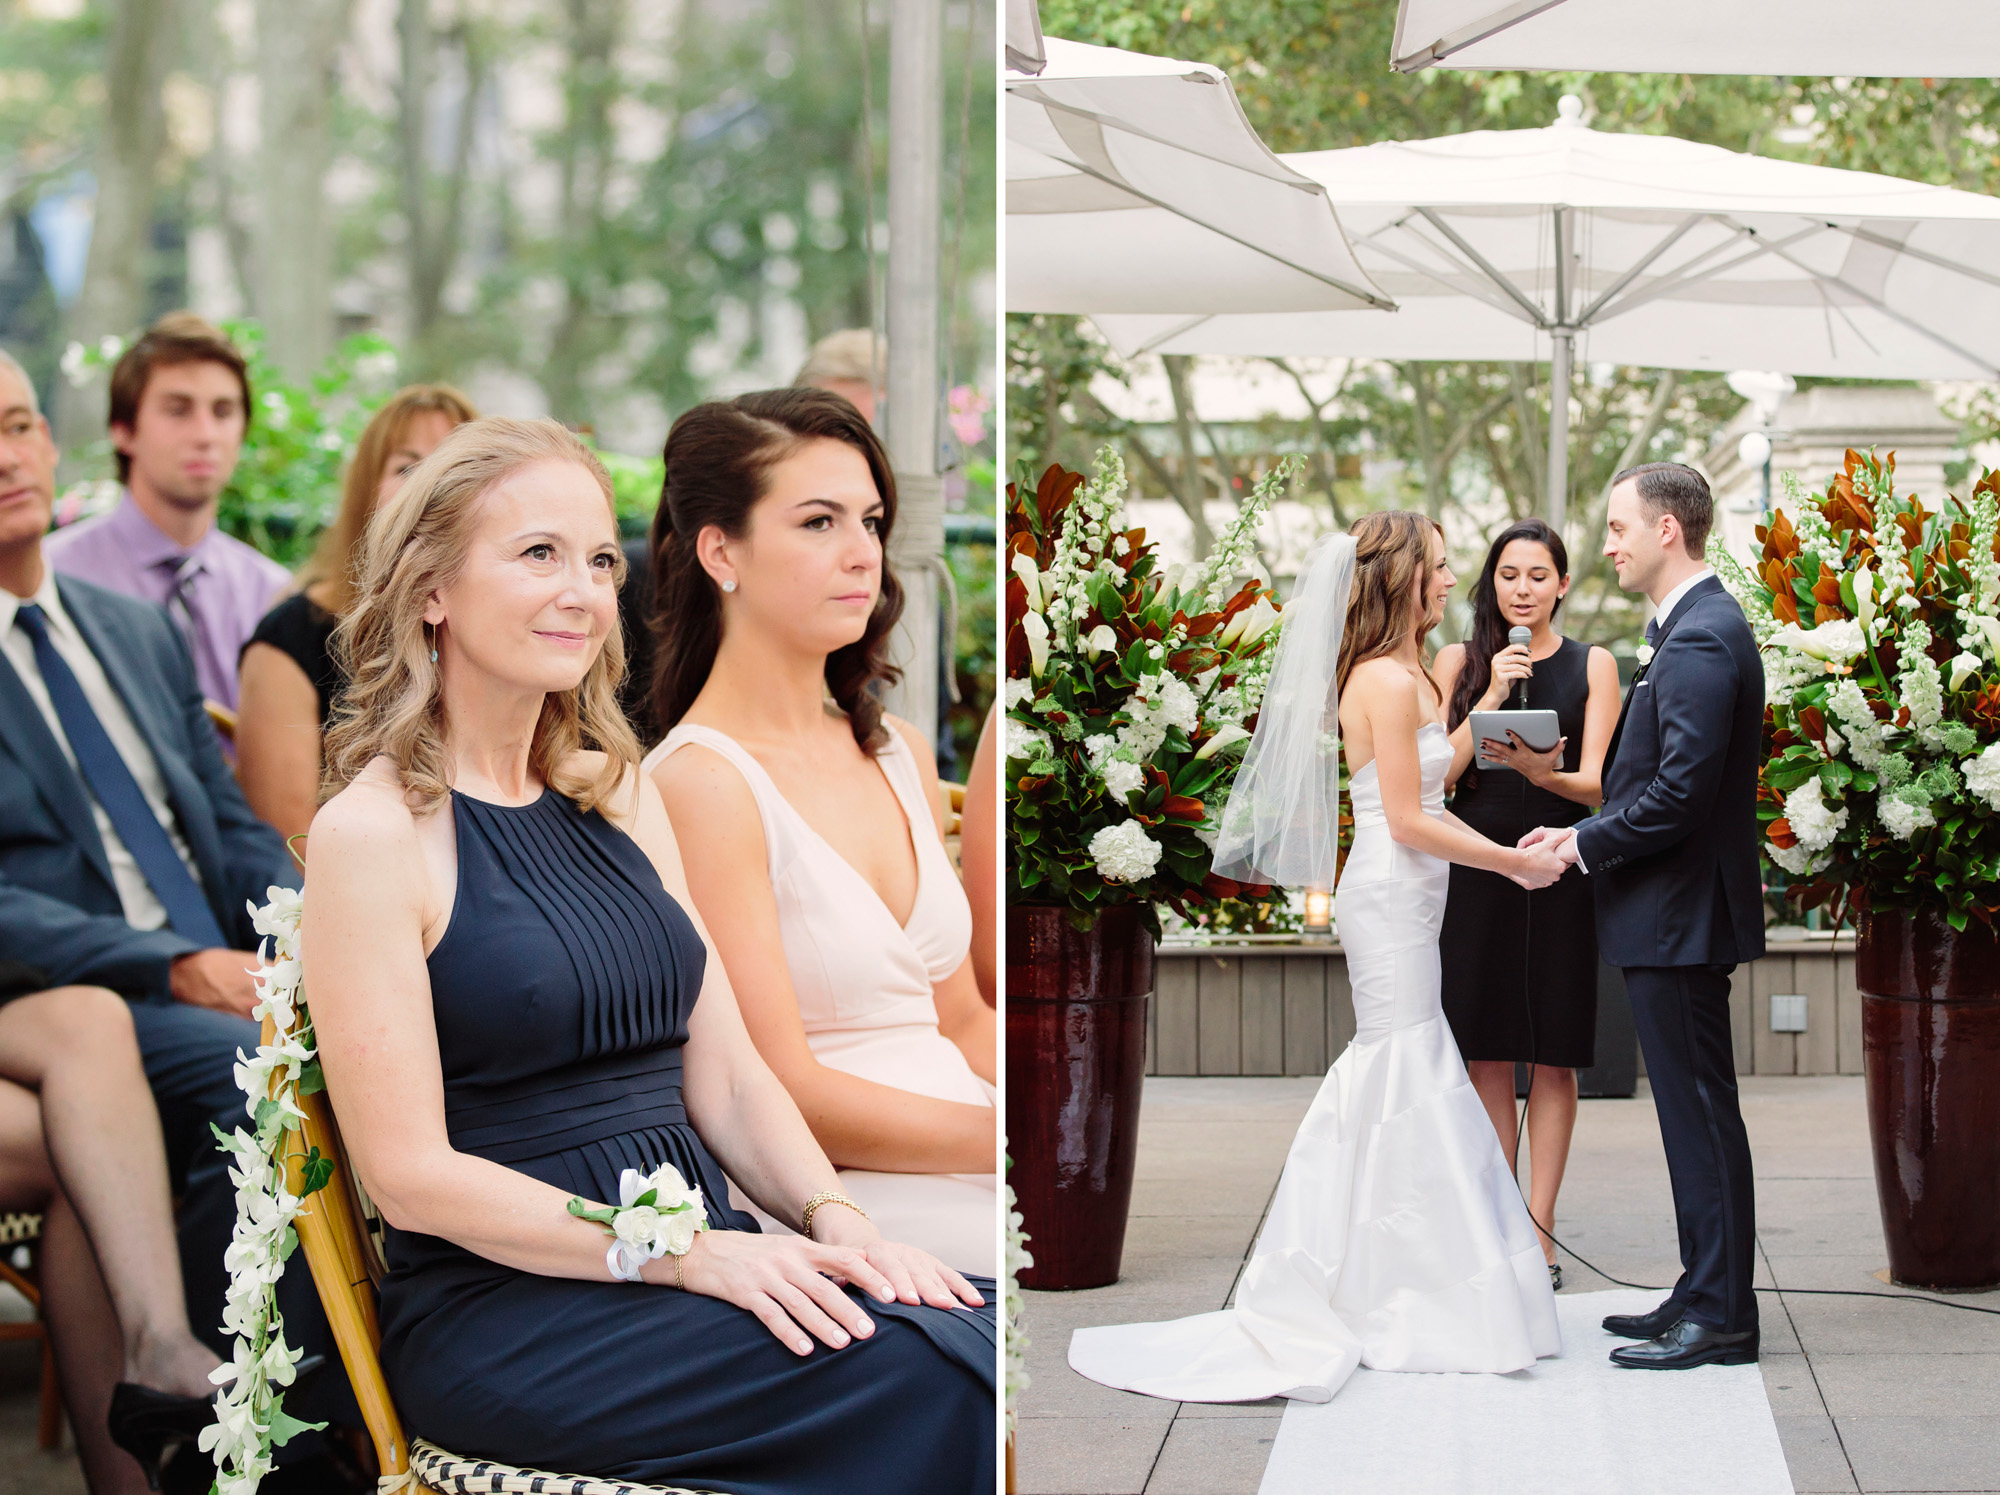 44_Ali_Lloyd_Bryant_Park_Grill_Wedding_NYC_Tanya_Salazar_Photography.jpg